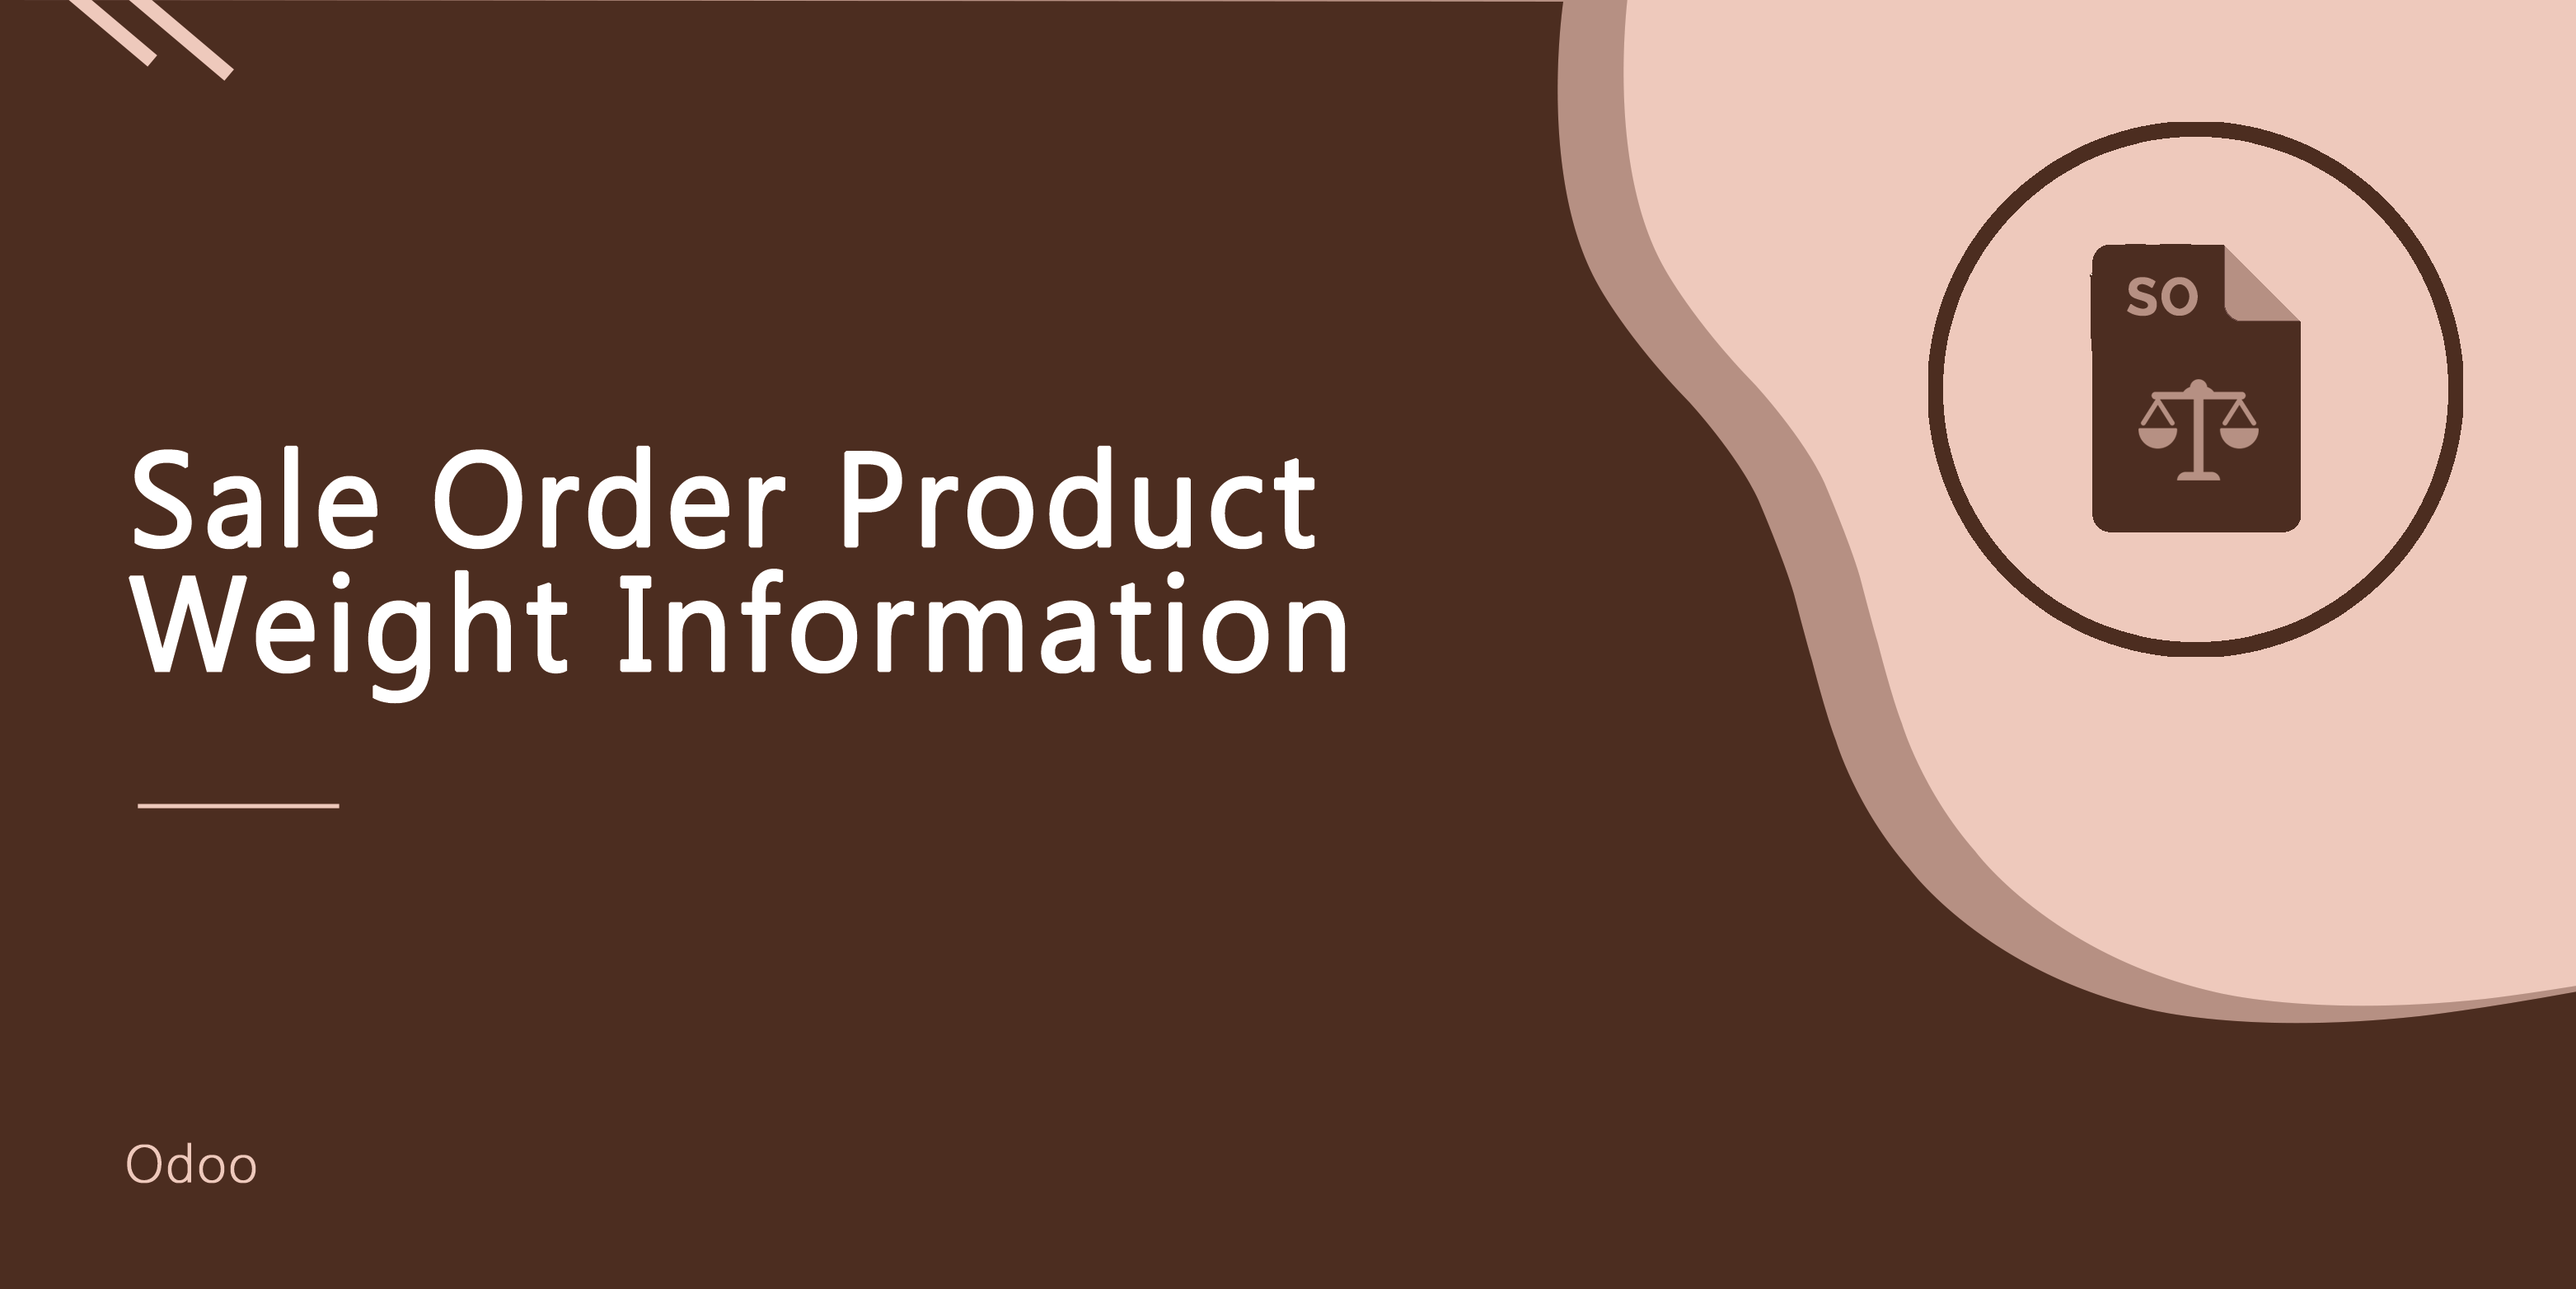 Sale Order Product Weight Information